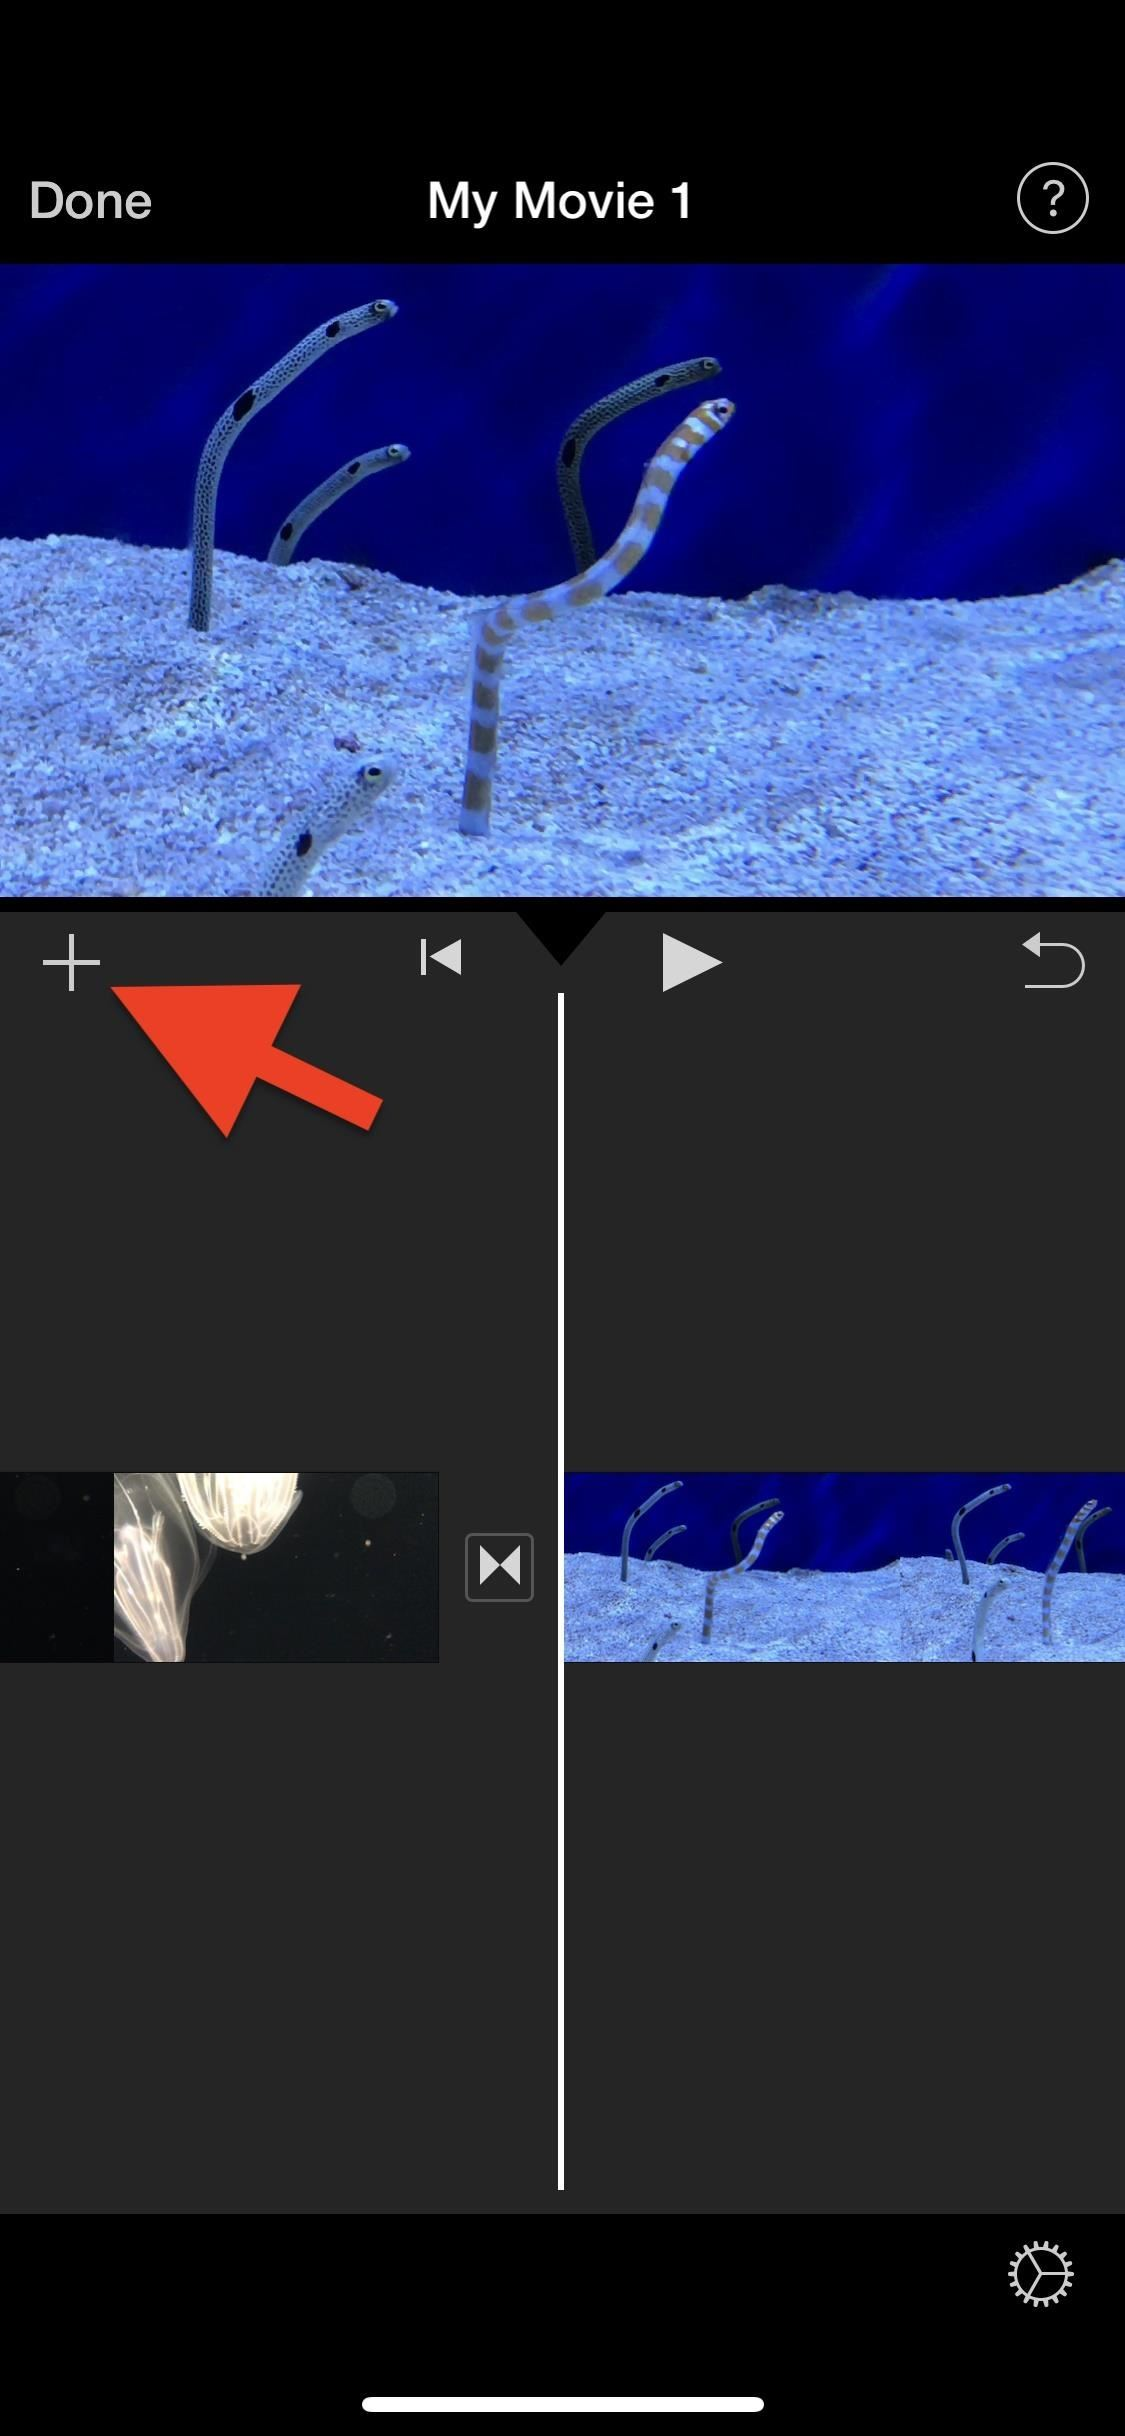 How to Add More Video Clips to iMovie Projects on Your iPhone